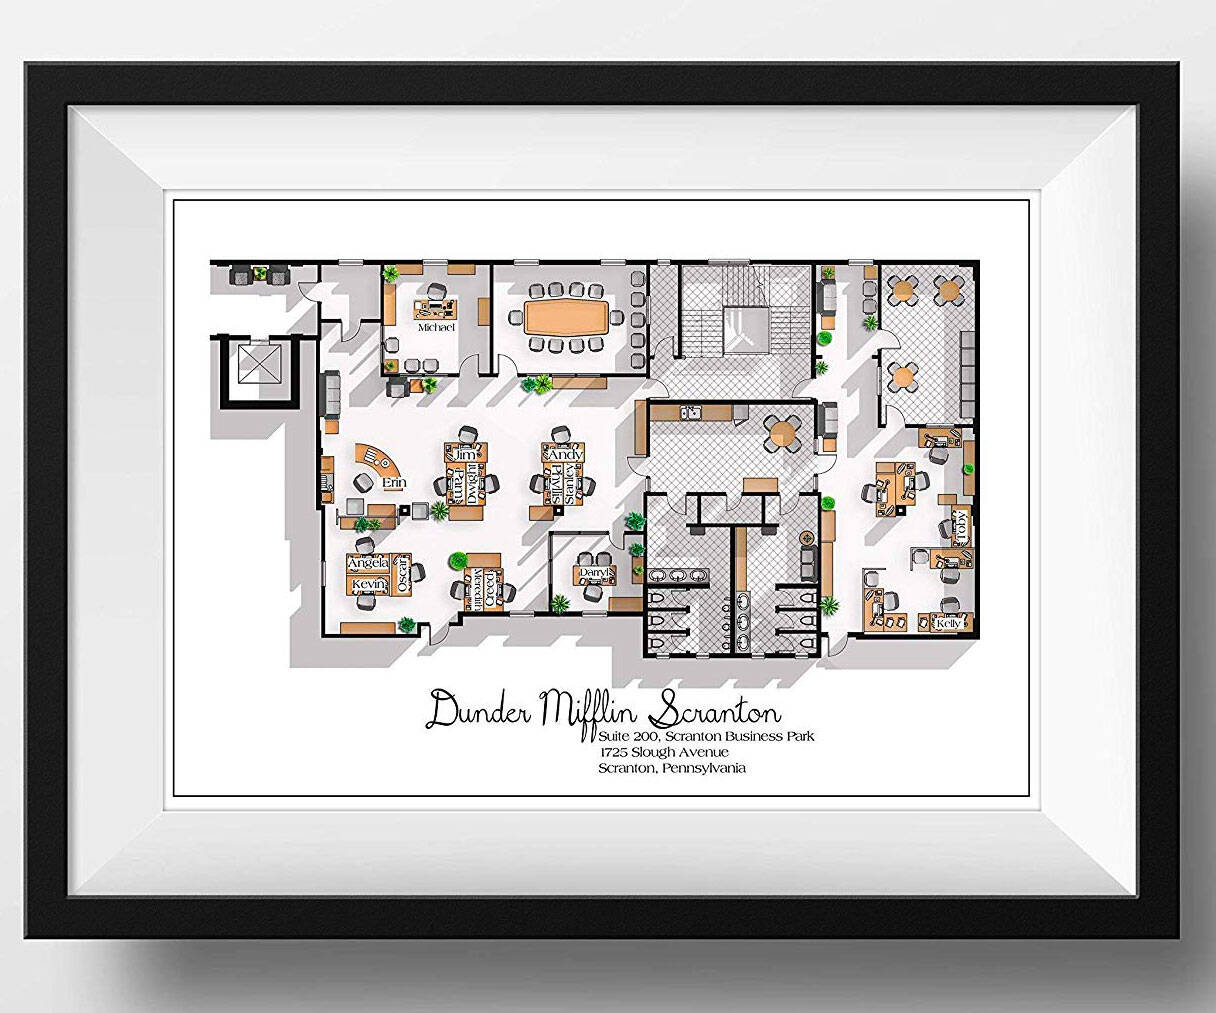 Dunder Mifflin Office Floor Plan Print - coolthings.us